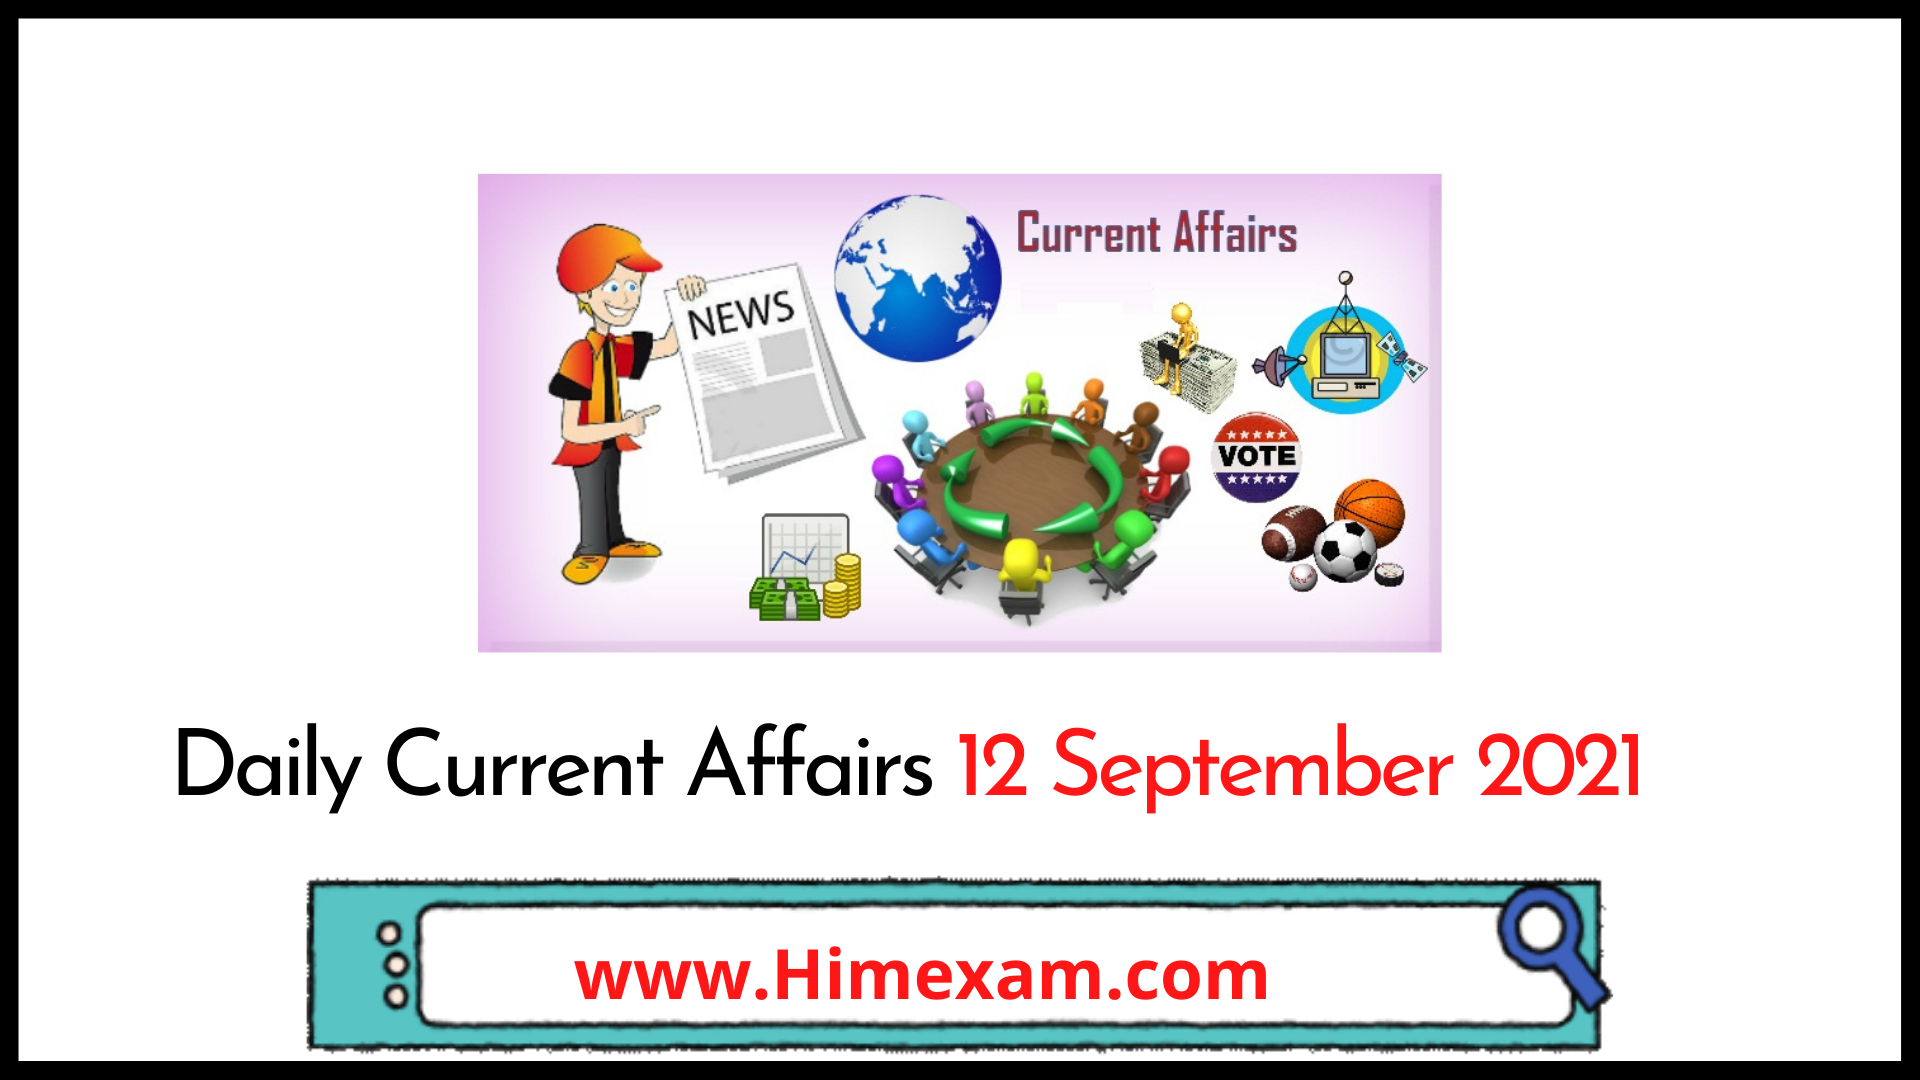 Daily Current Affairs 12 September 2021